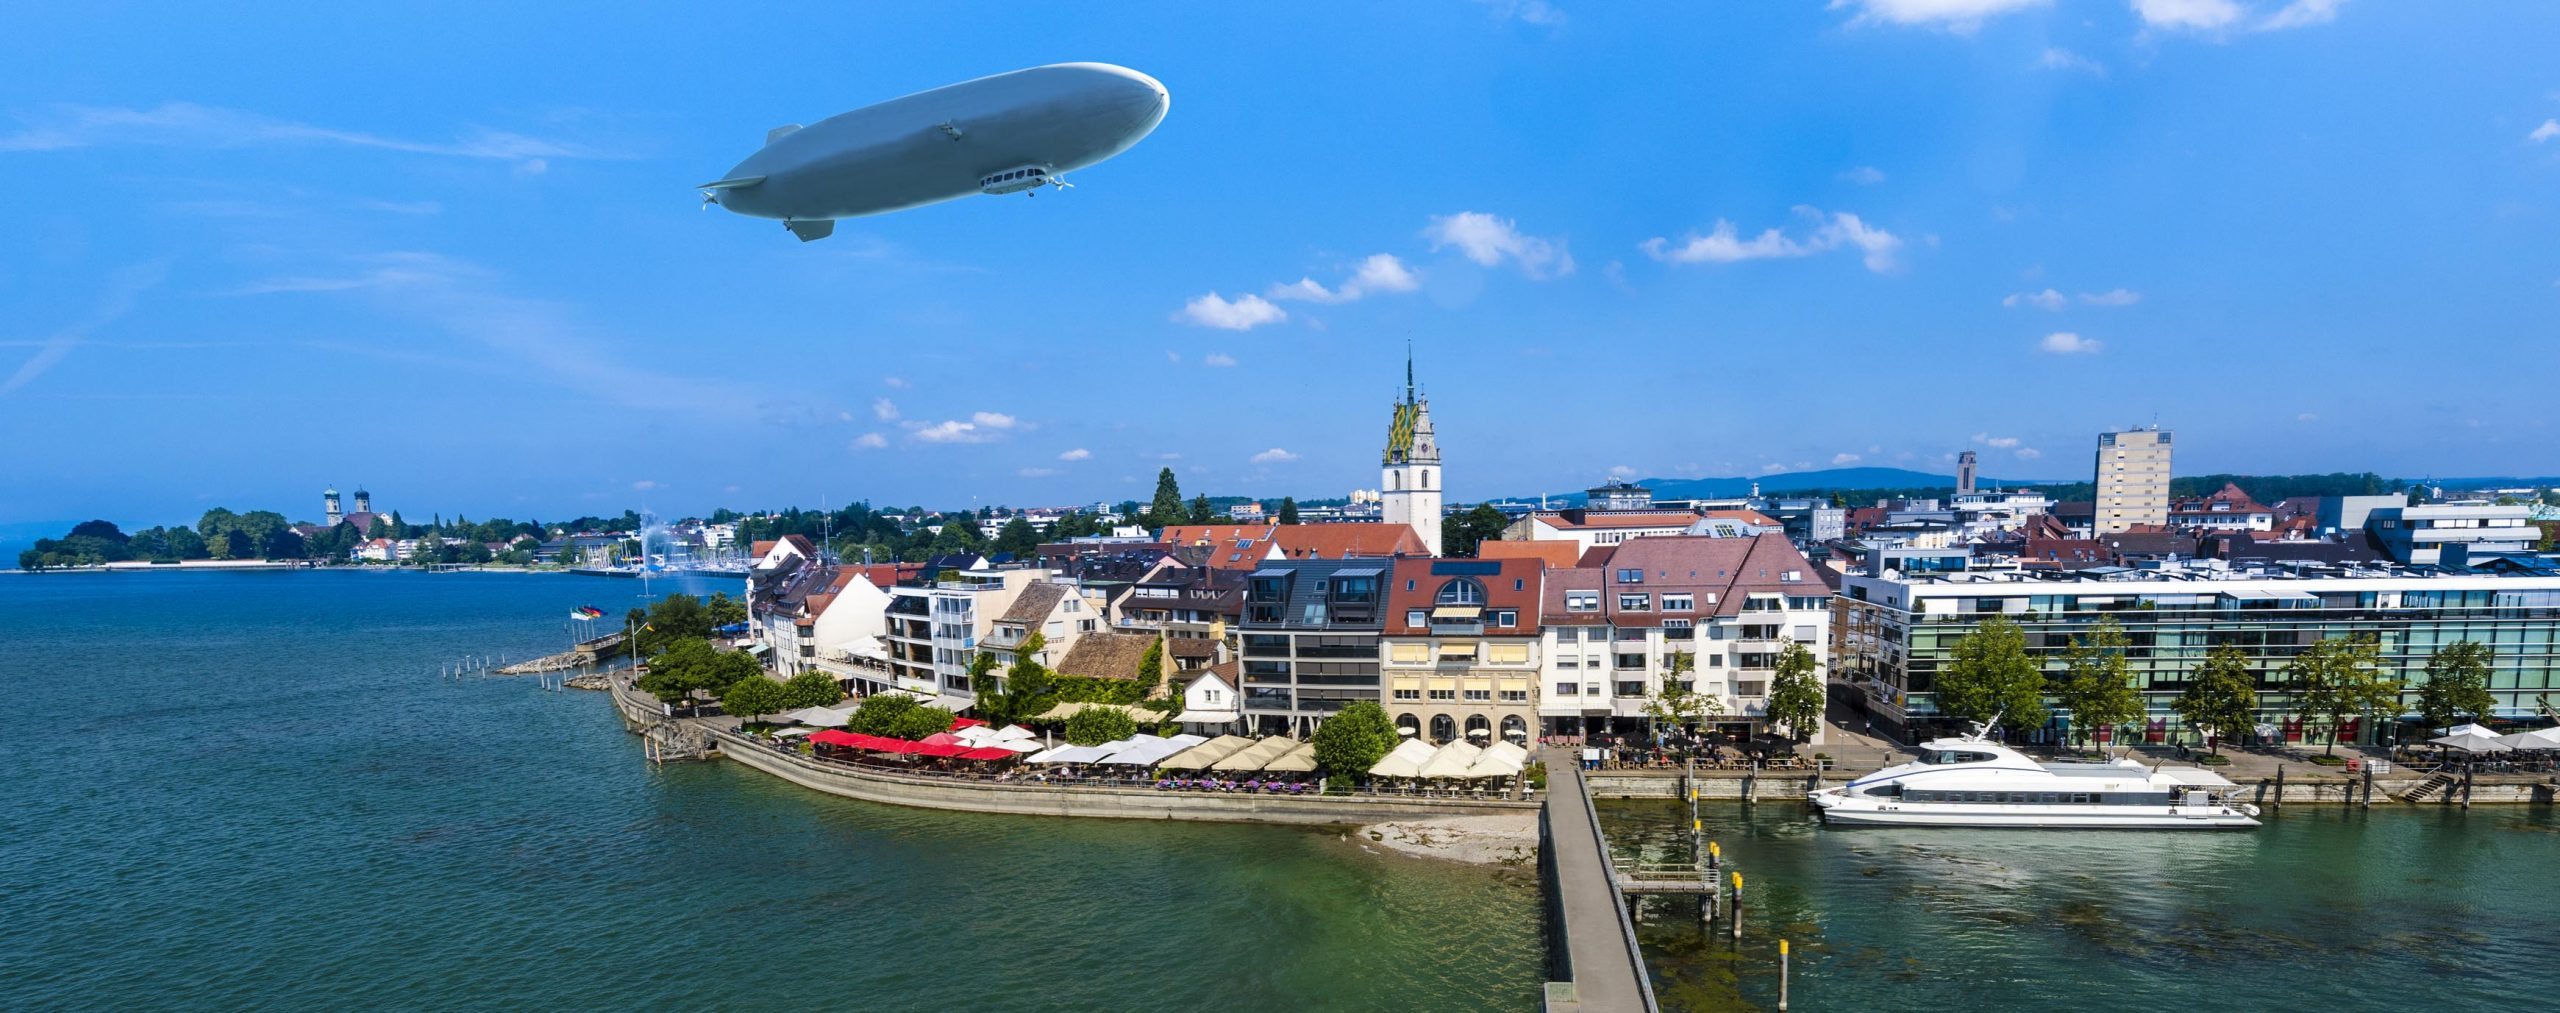 View from the mole tower over Friedrichshafen at Lake Constance